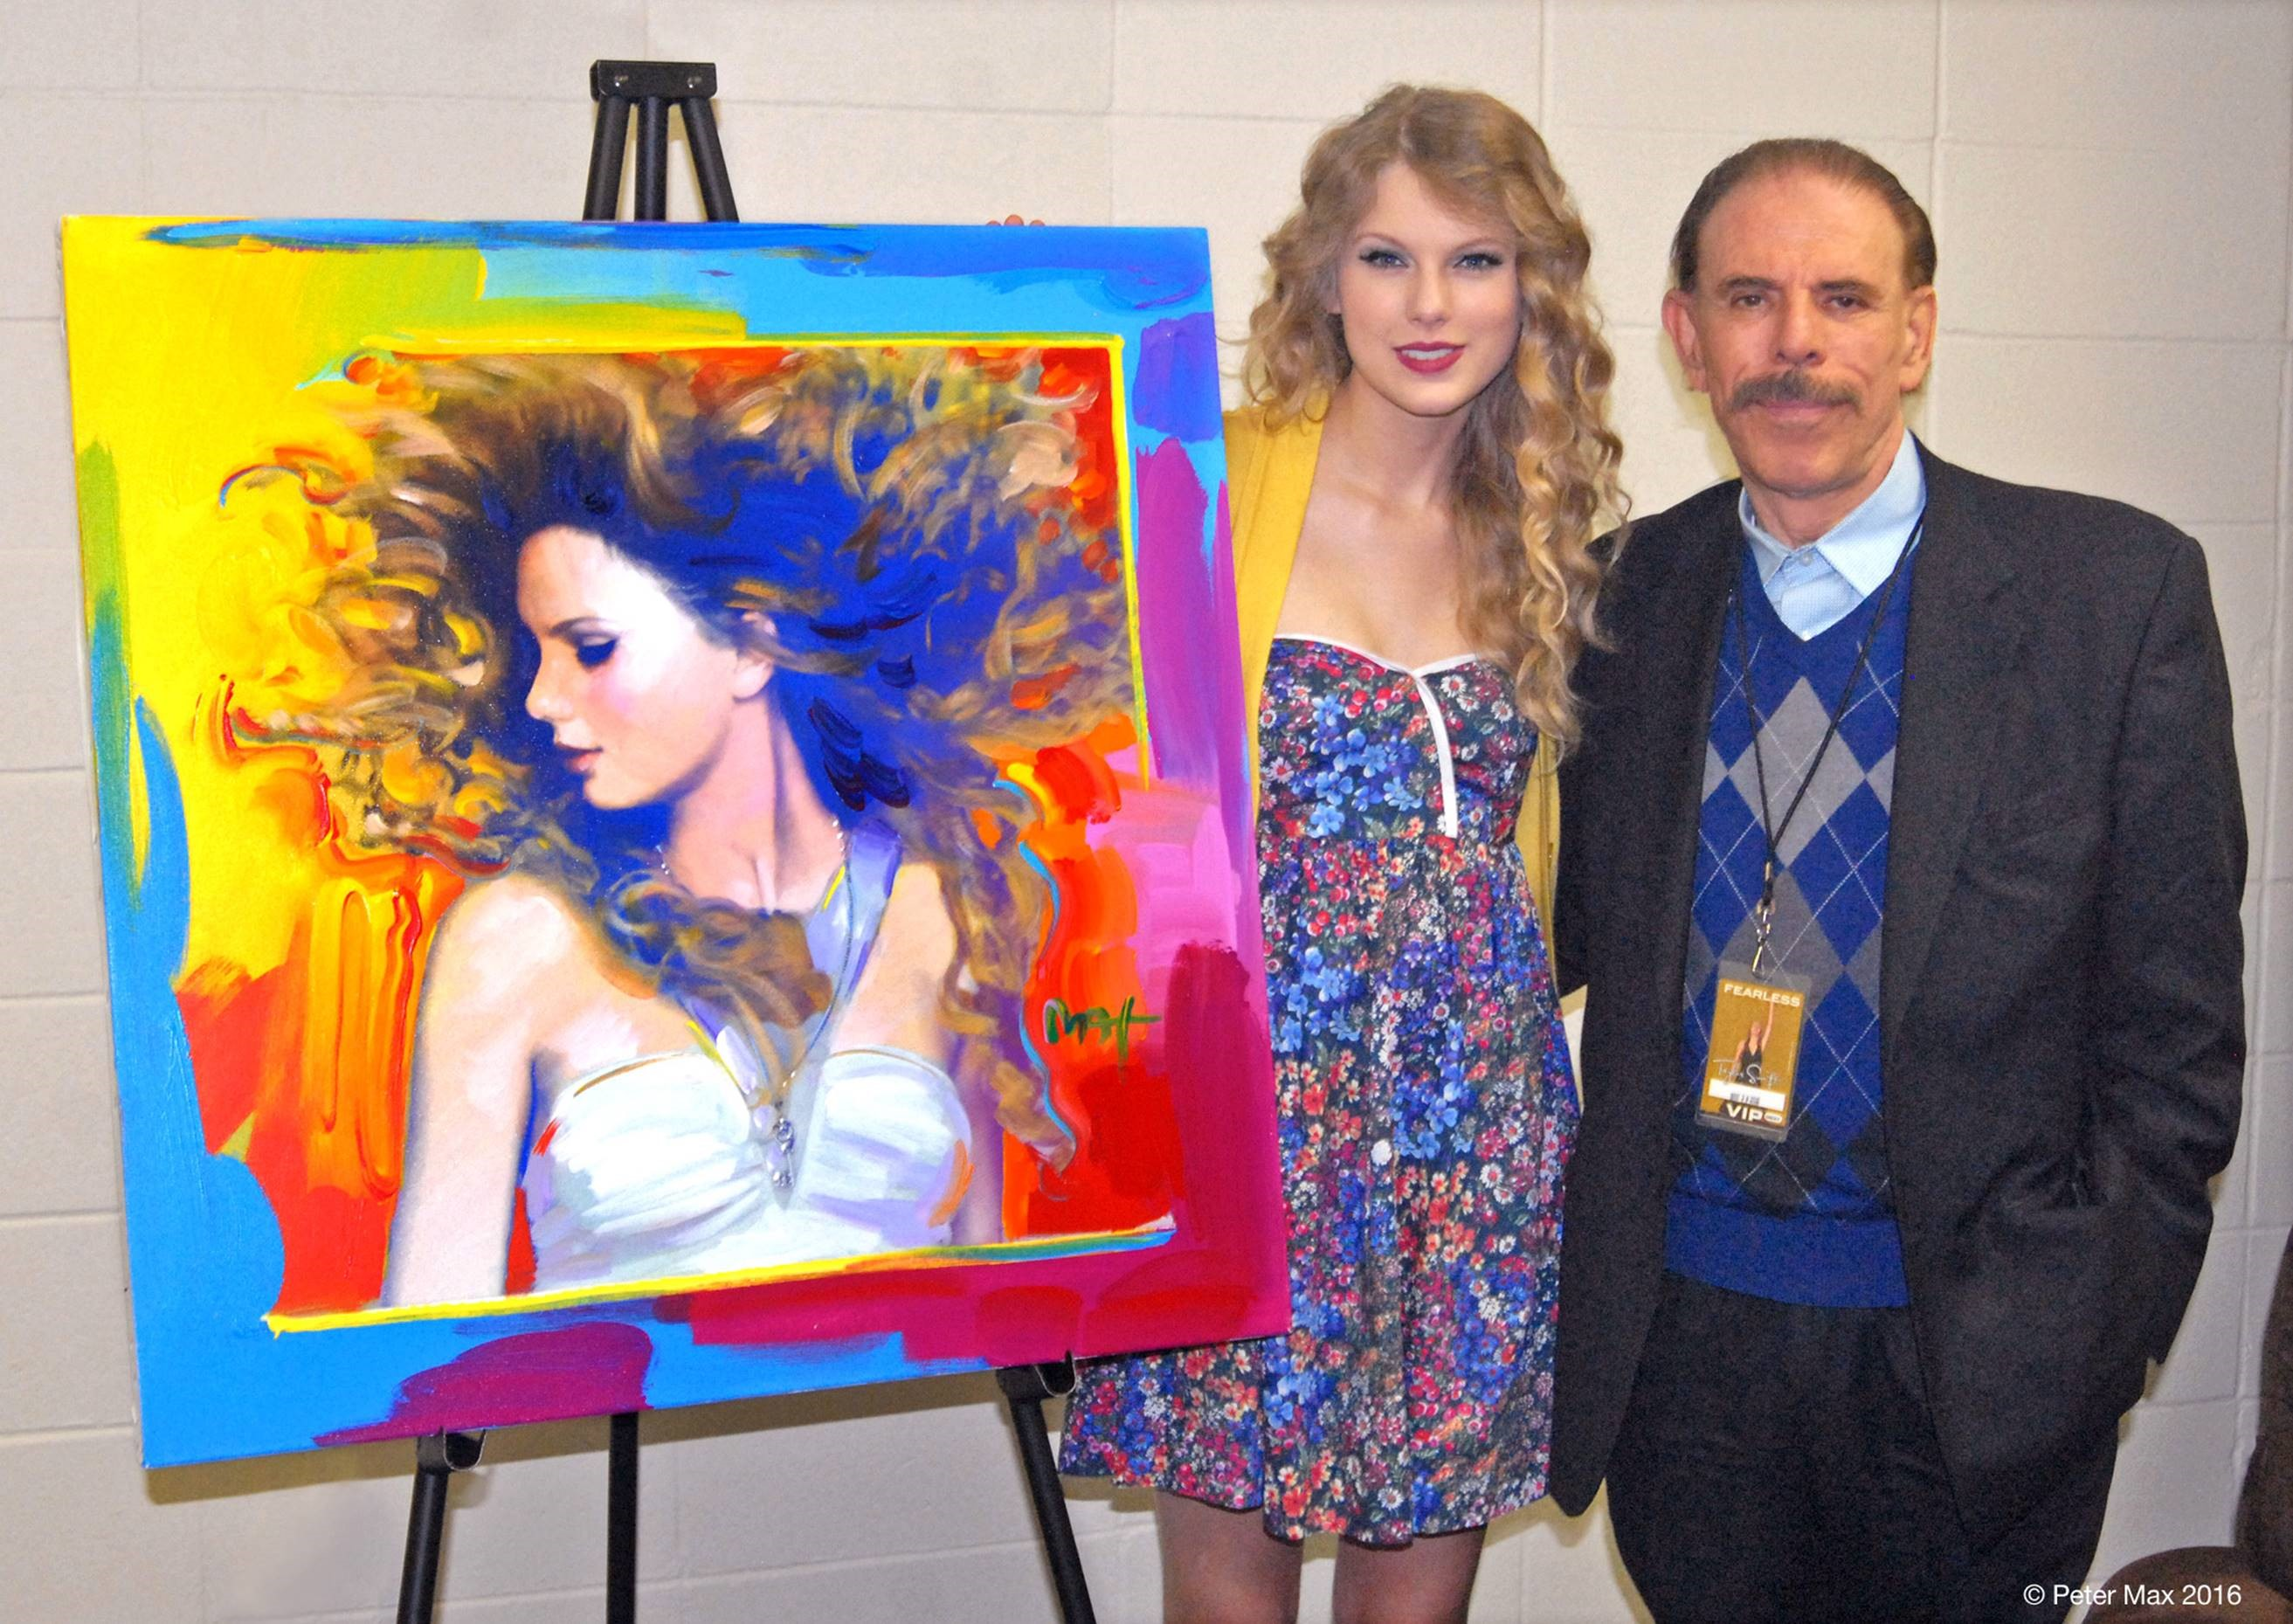 taylor swift by peter max